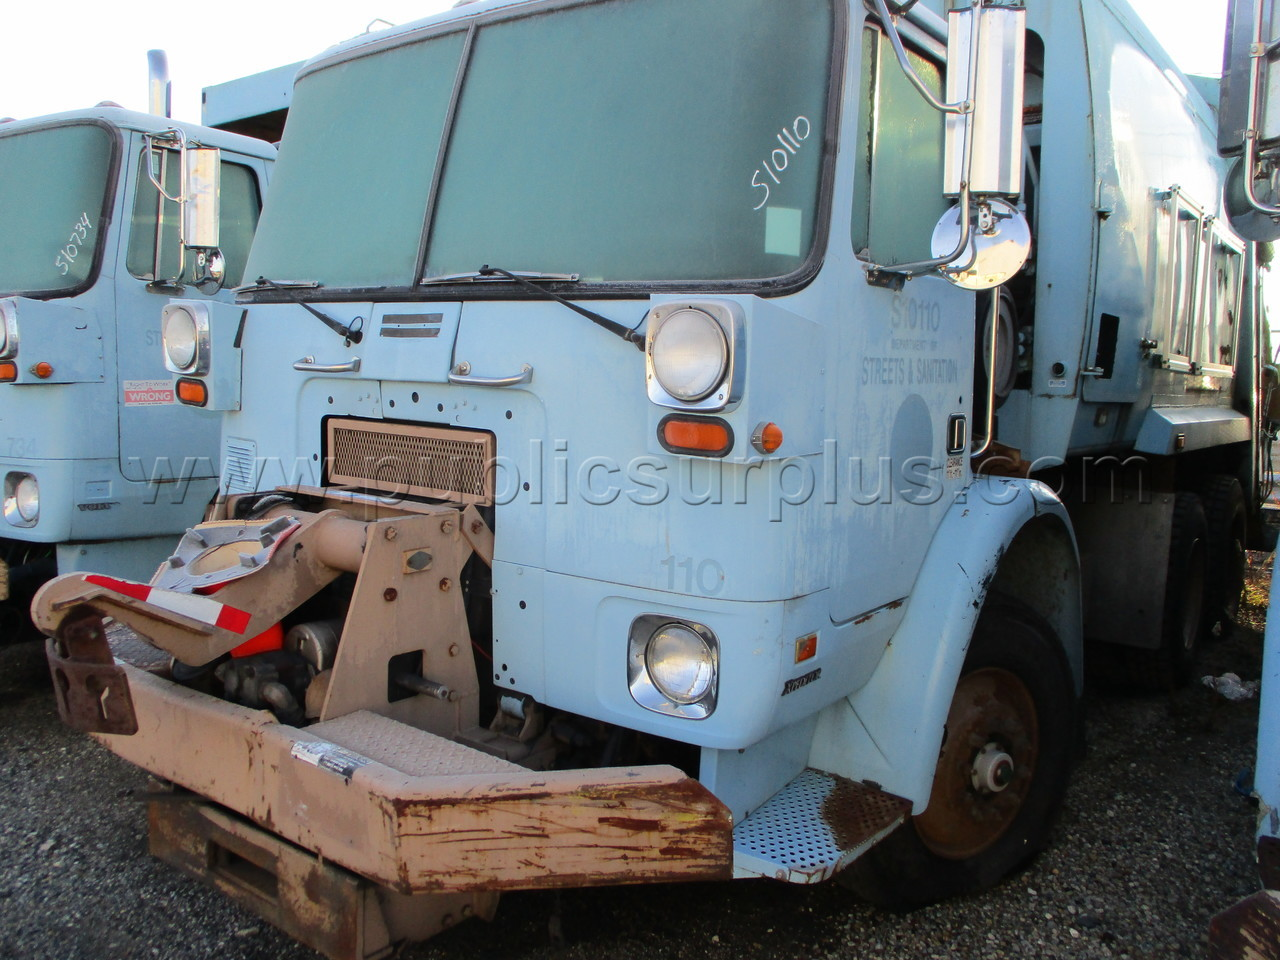 #2246863 - 2004 AUTOCAR XPEDITOR GARBAGE TRUCK